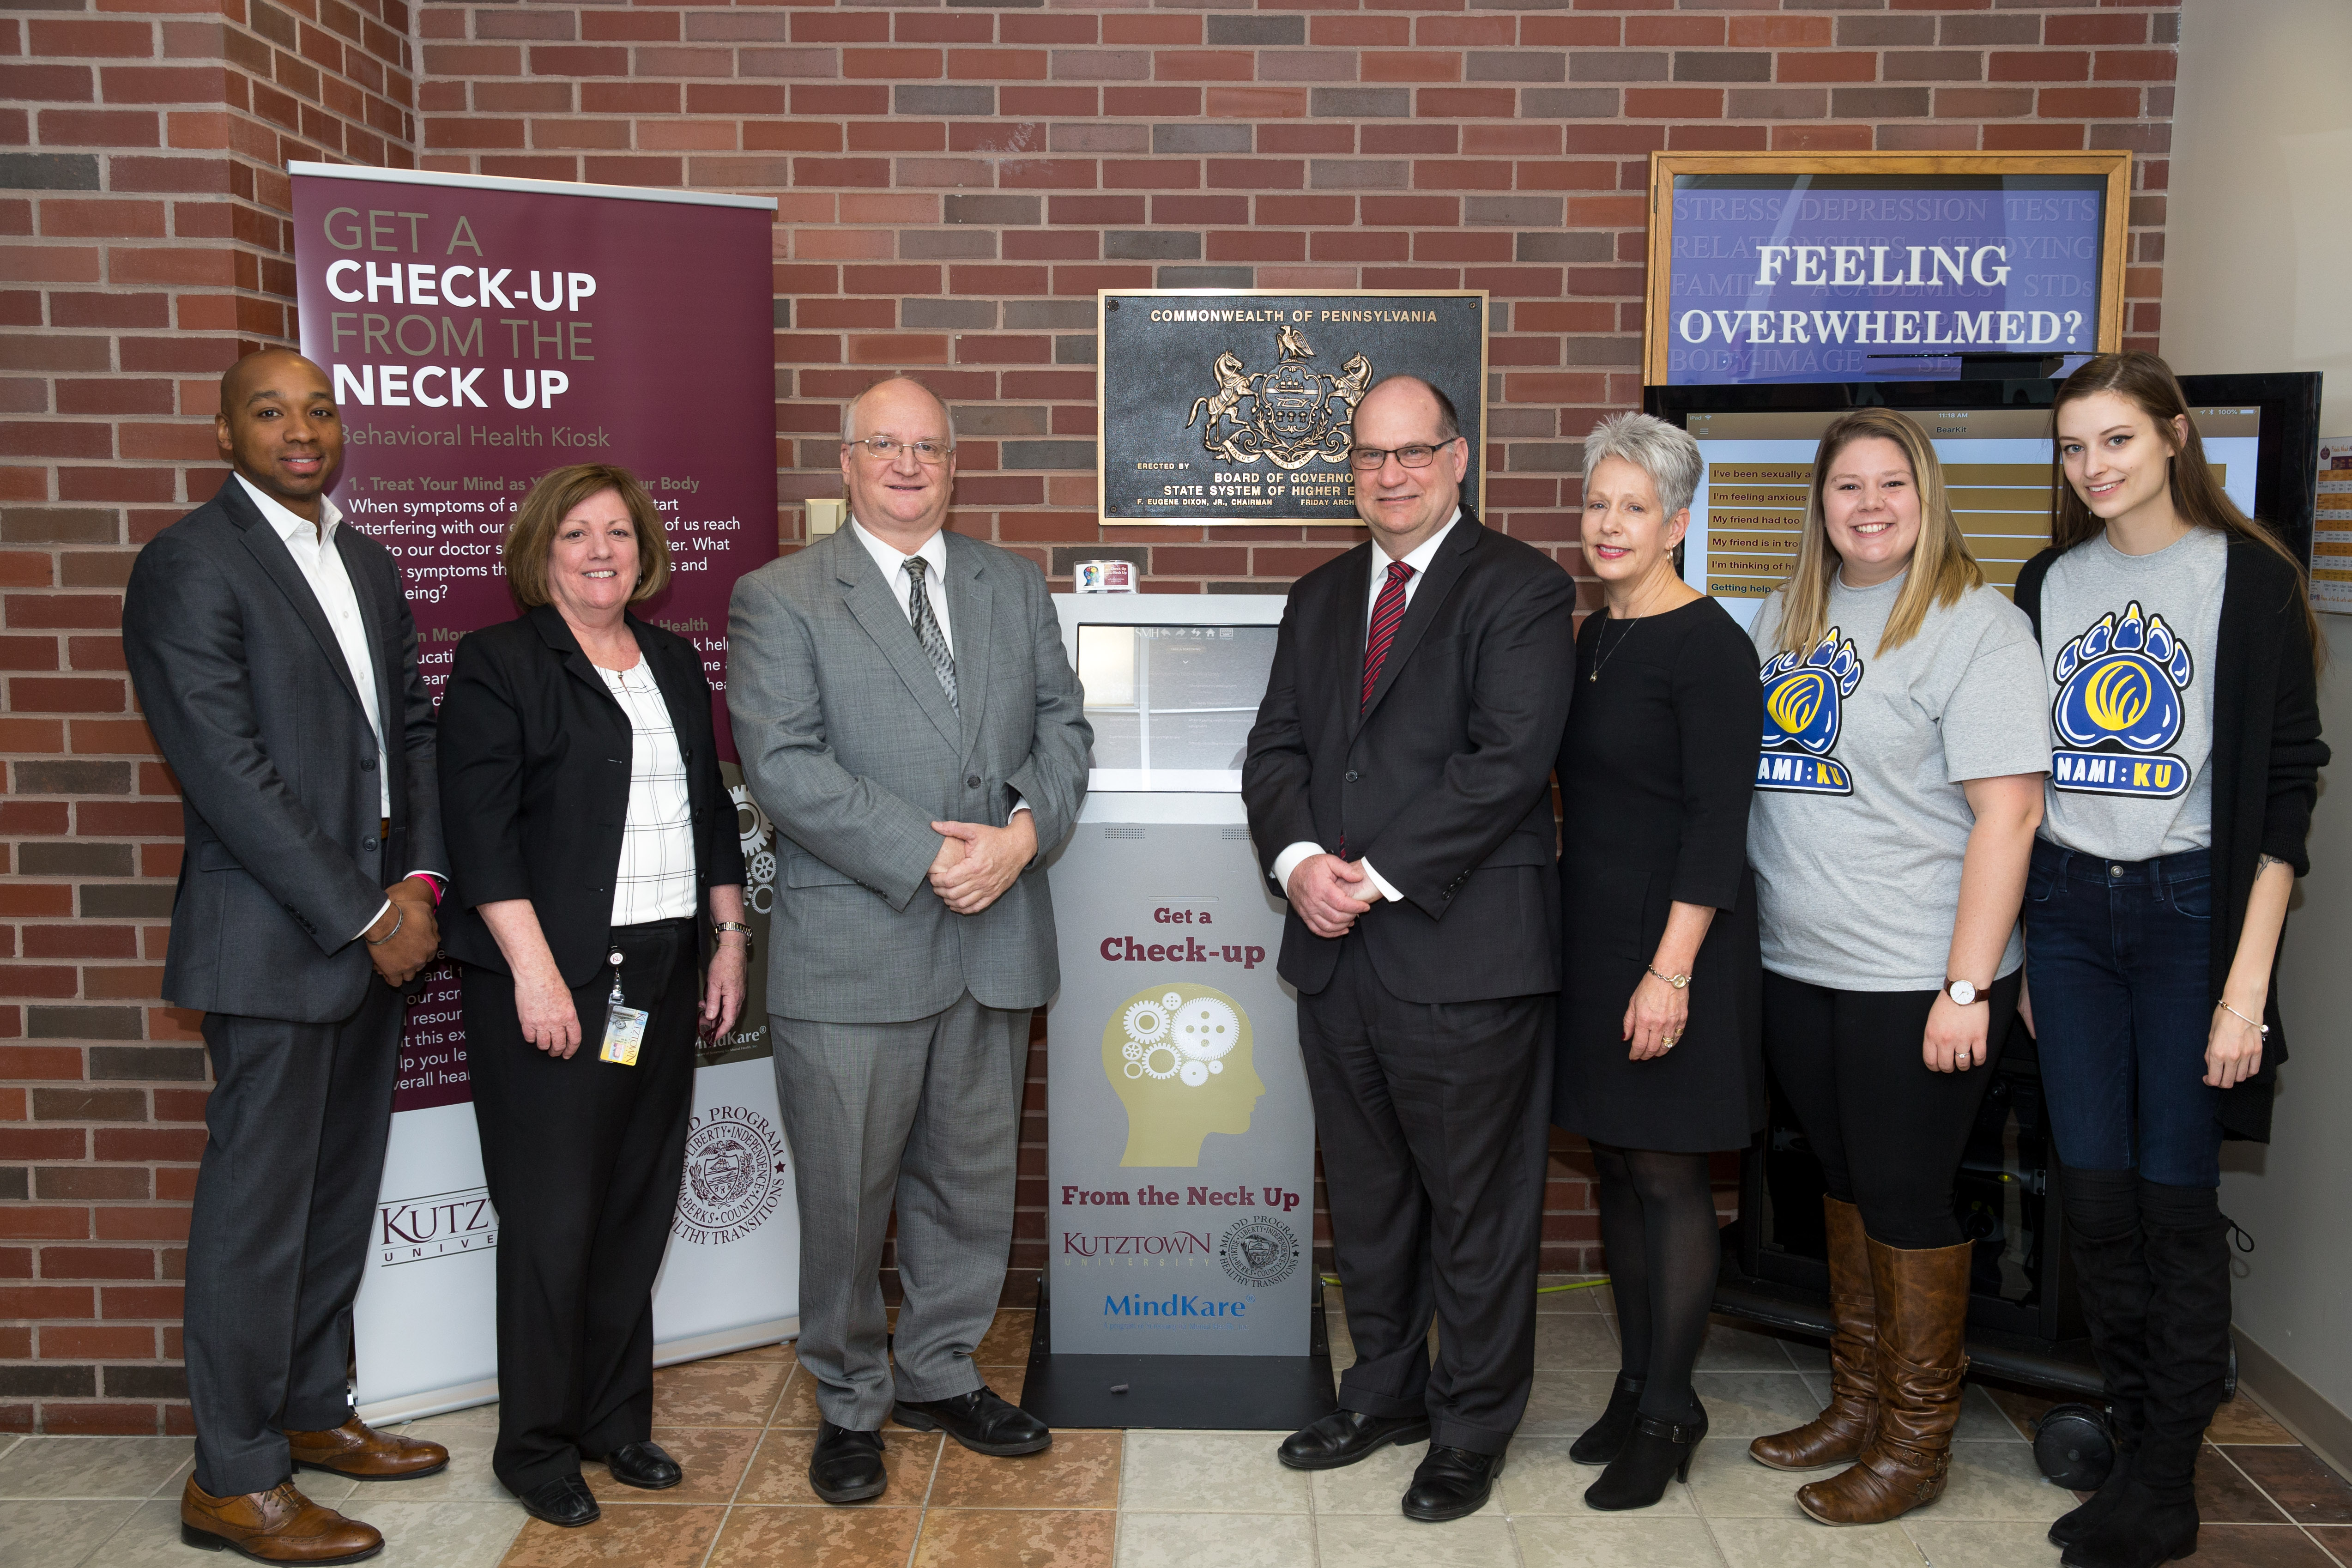 President Hawkinson, Staff, and Students standing on either side of the MindKare mental health kiosk